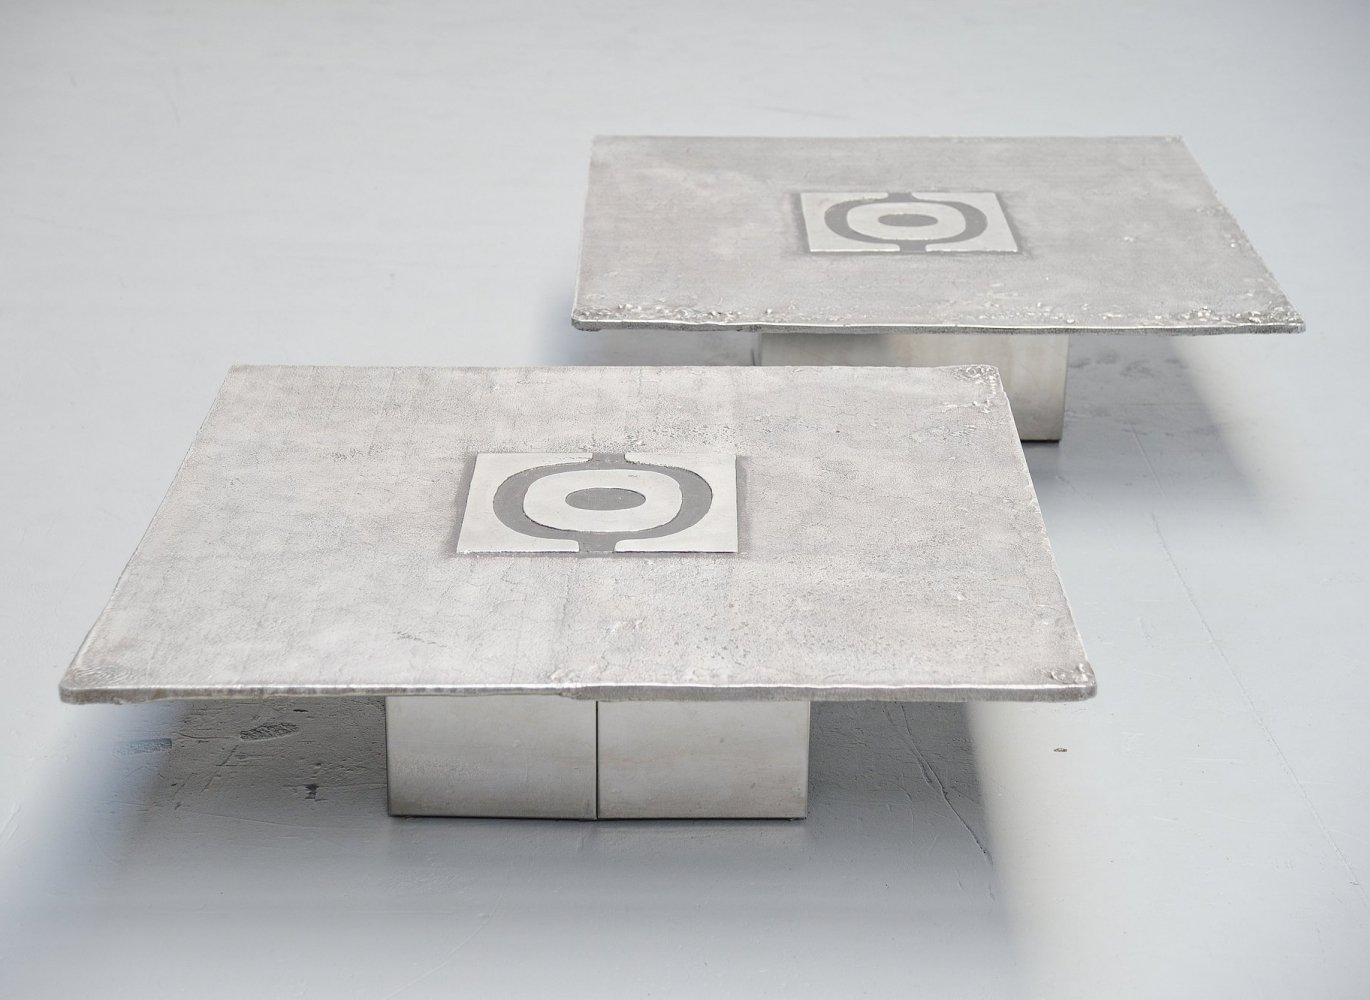 Pair of Willy Ceysens coffee tables, Belgium 1970